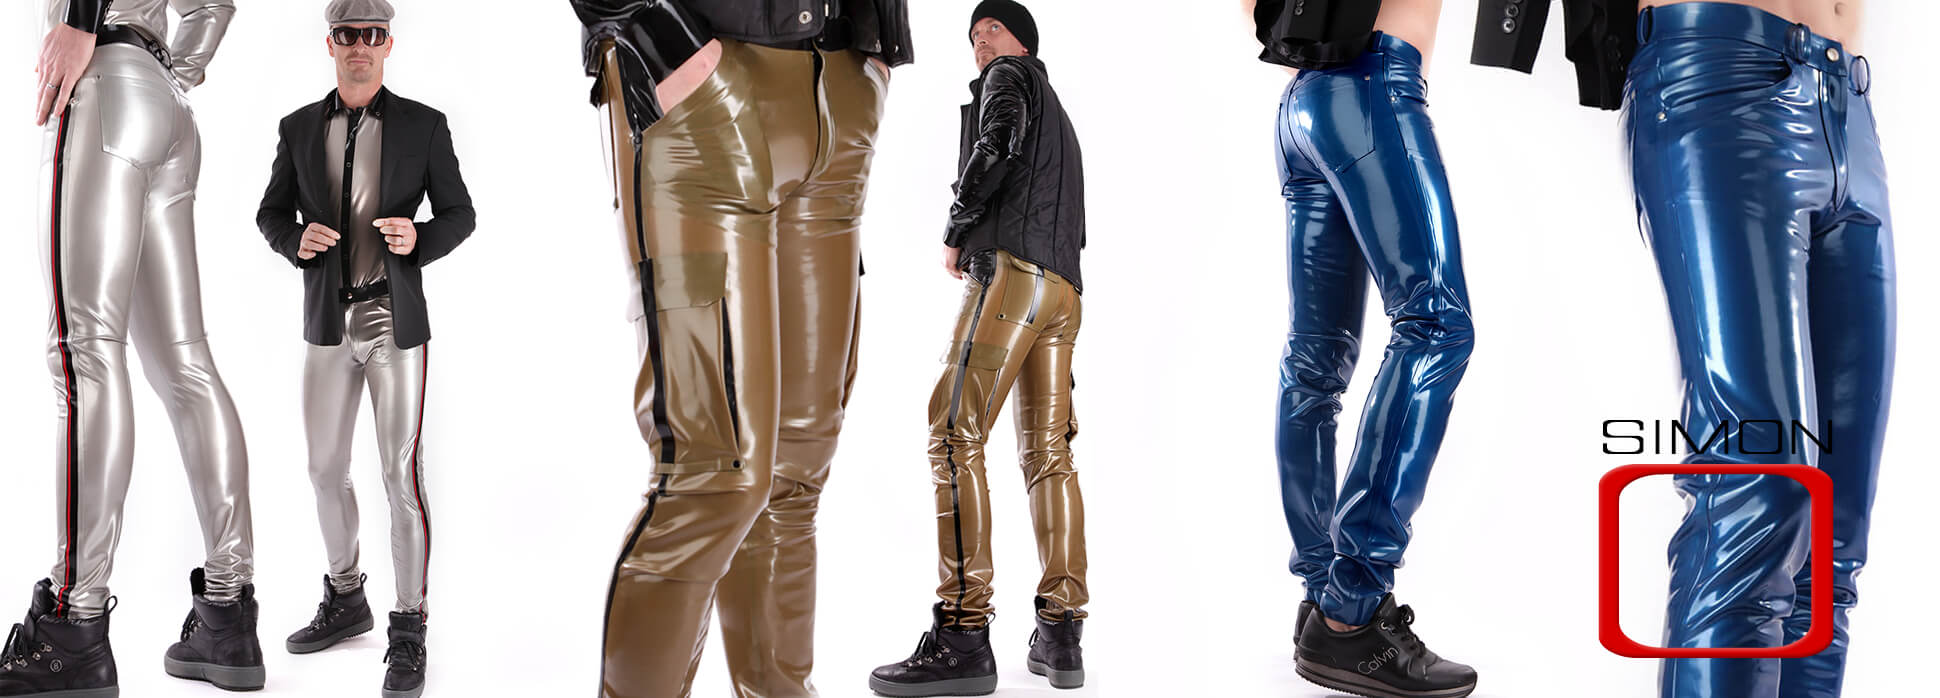 Latex Pants for men in black silver blue. Glossy surface from skin tight slim fit to Cargo Style